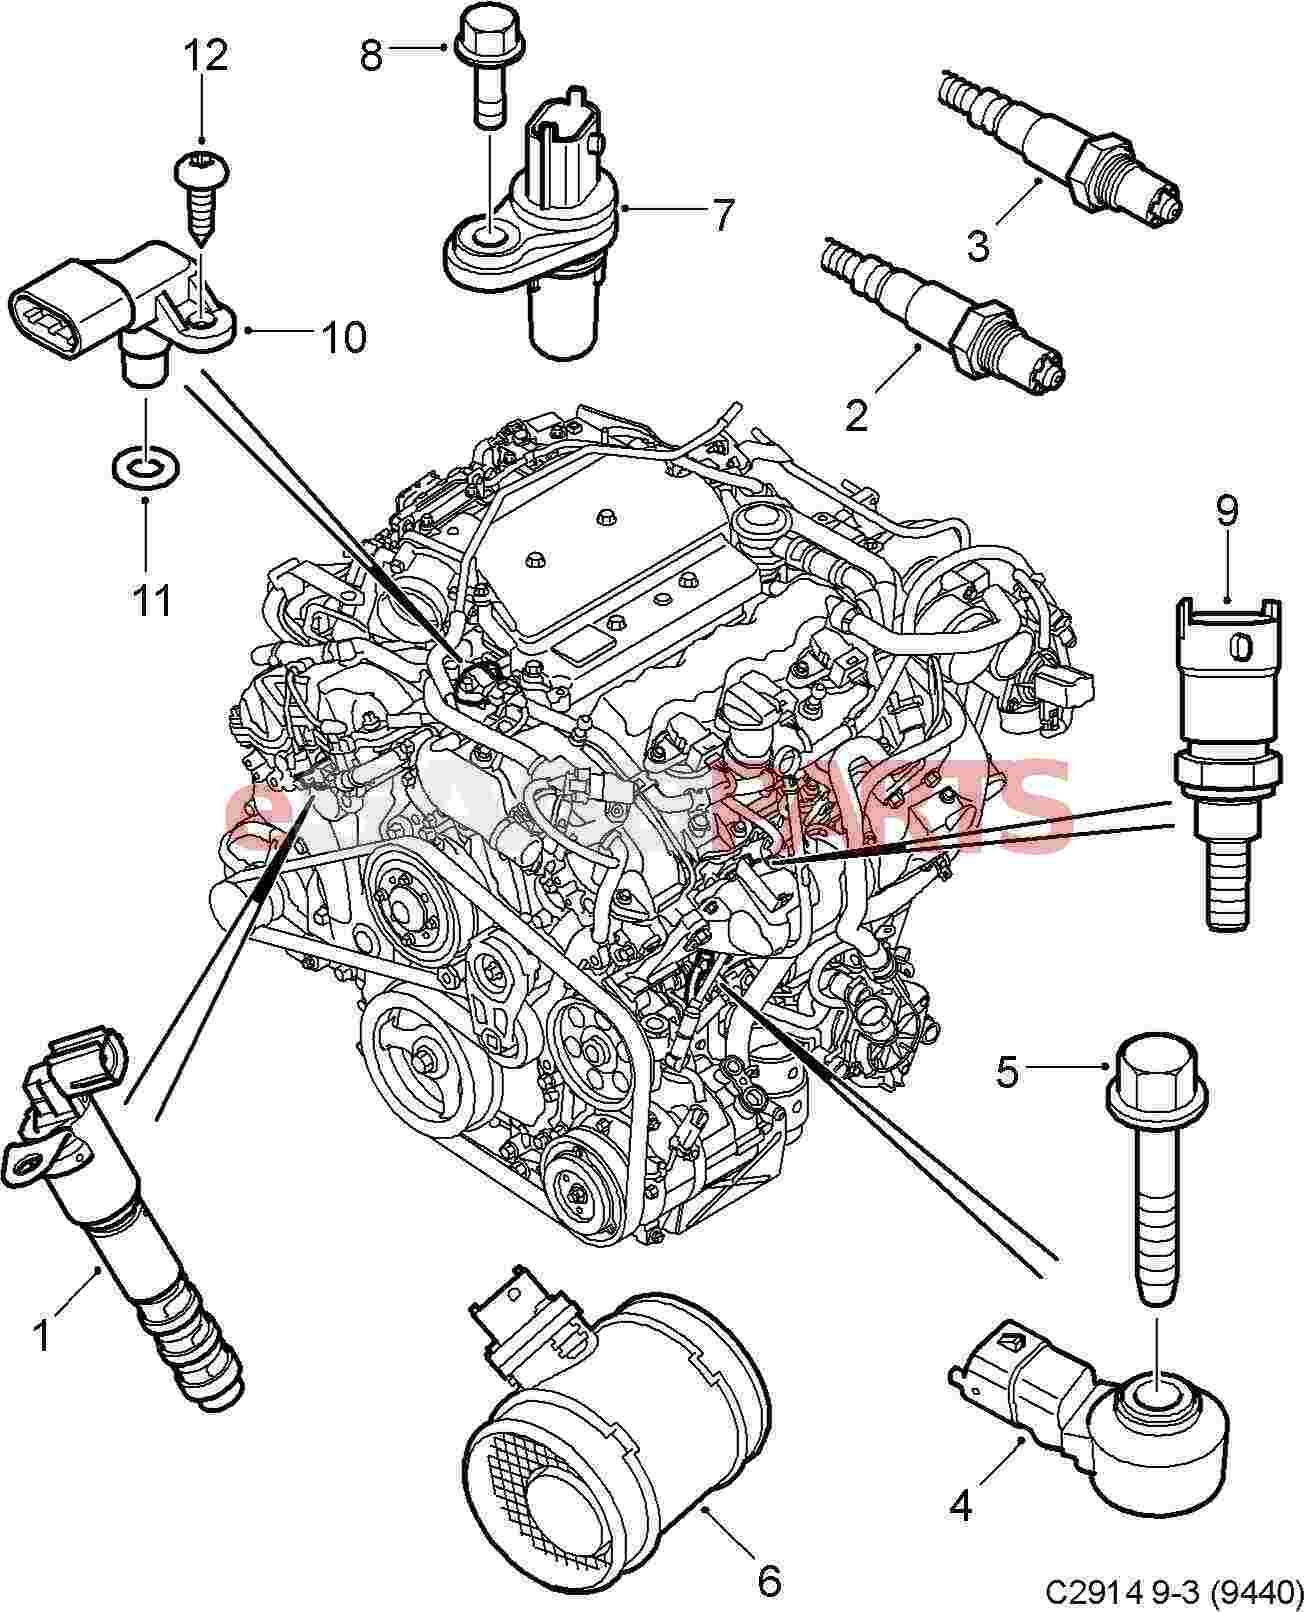 Free Download Saab 9 3 2003 Linear Wiring Diagram